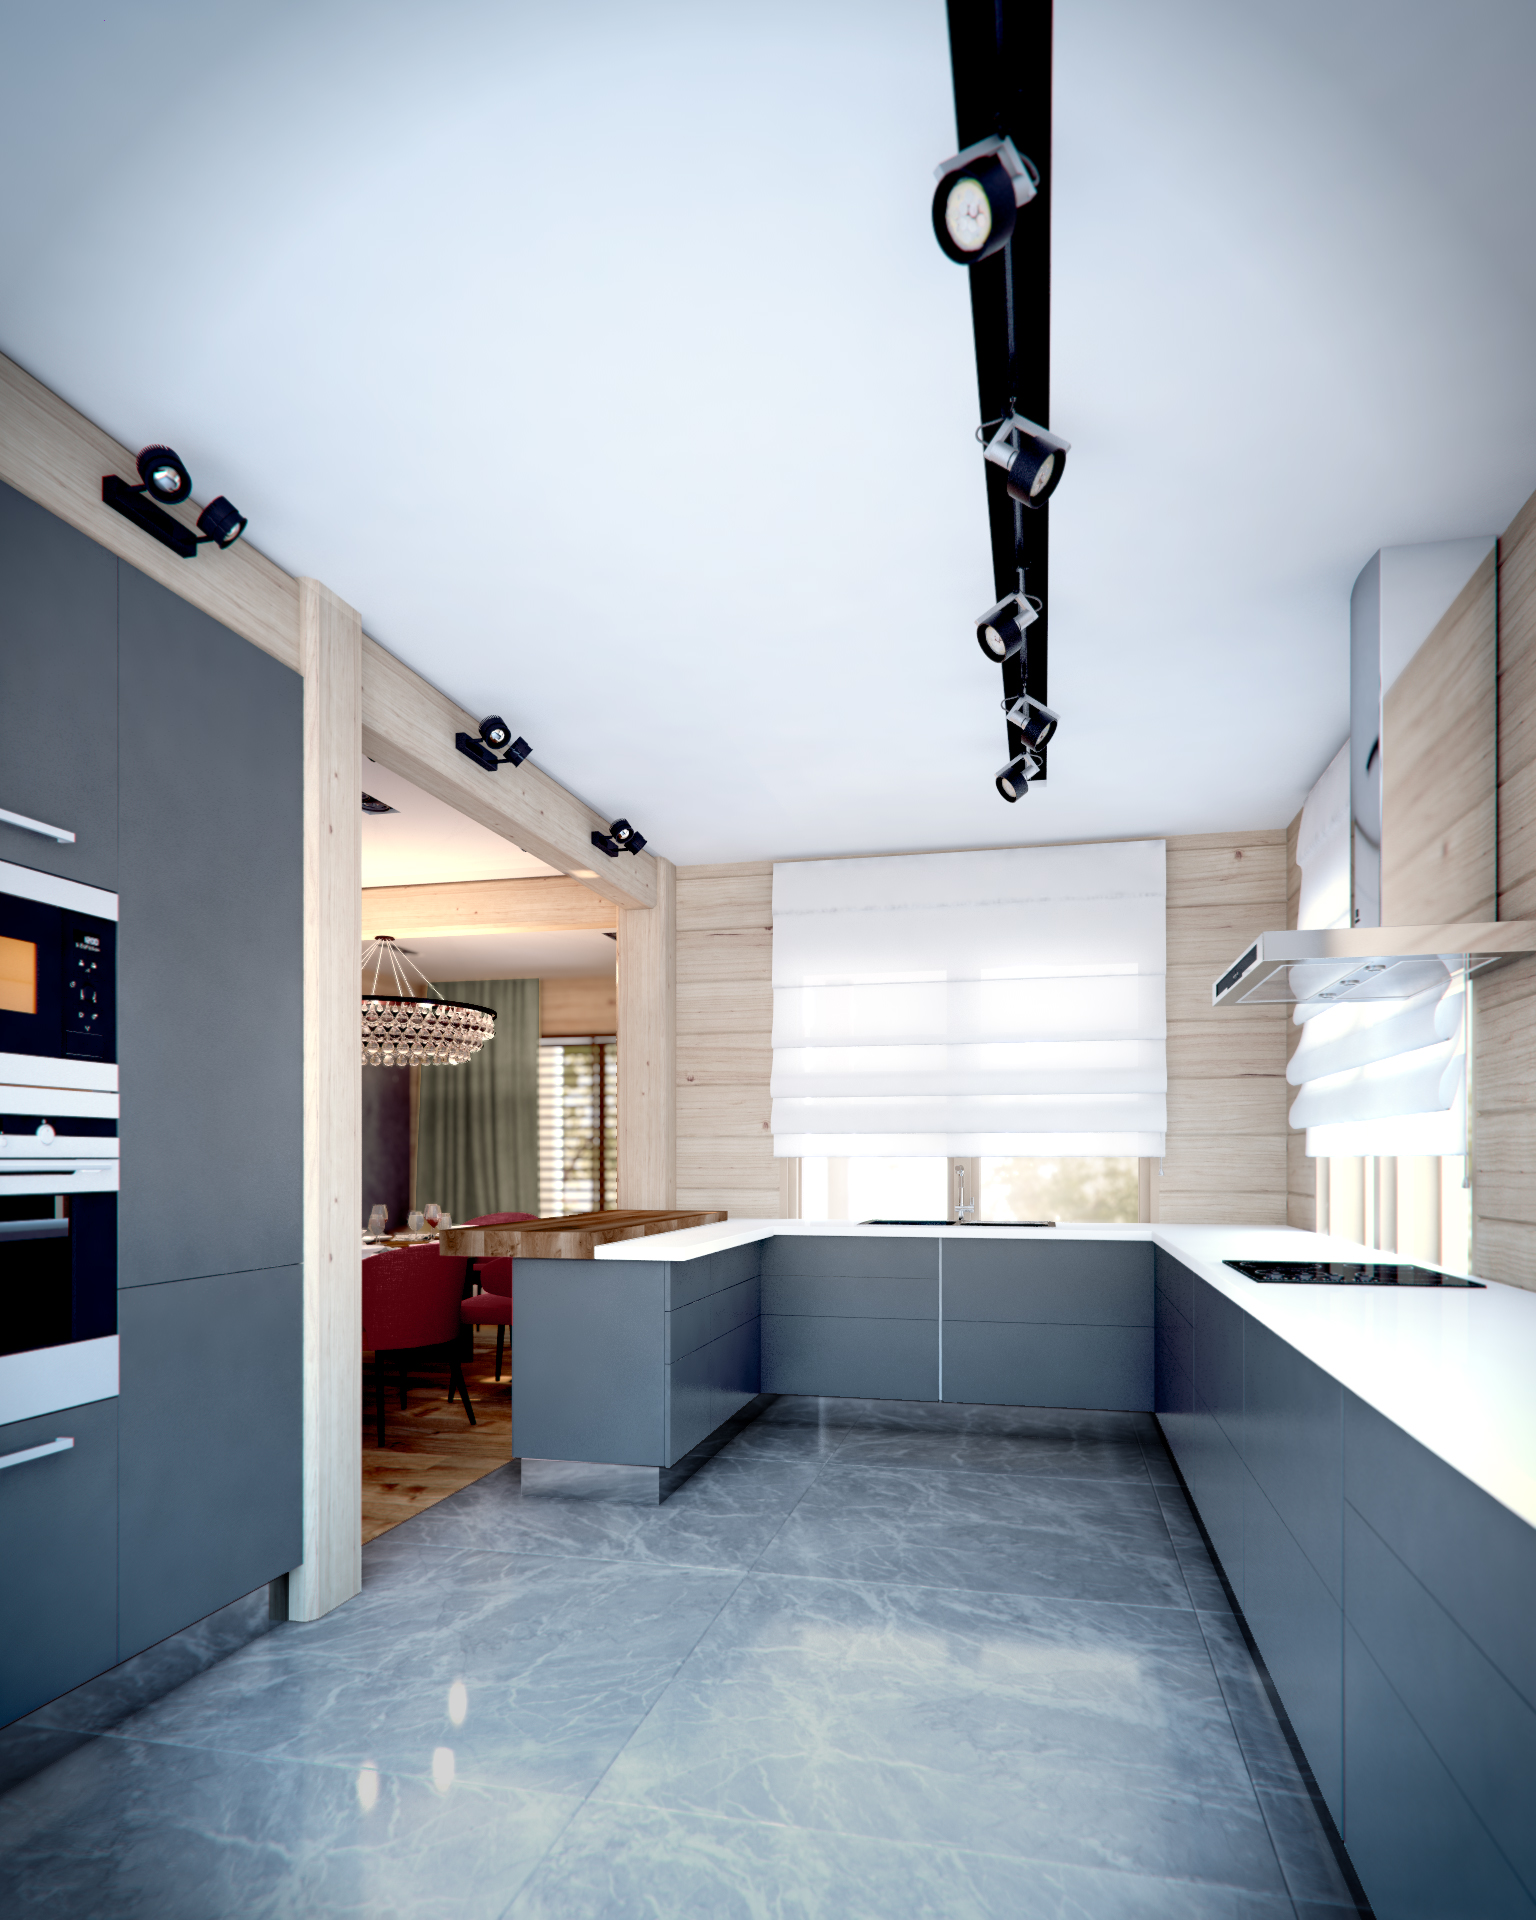 6_MatchArchitects_Honka_kitchen.jpg